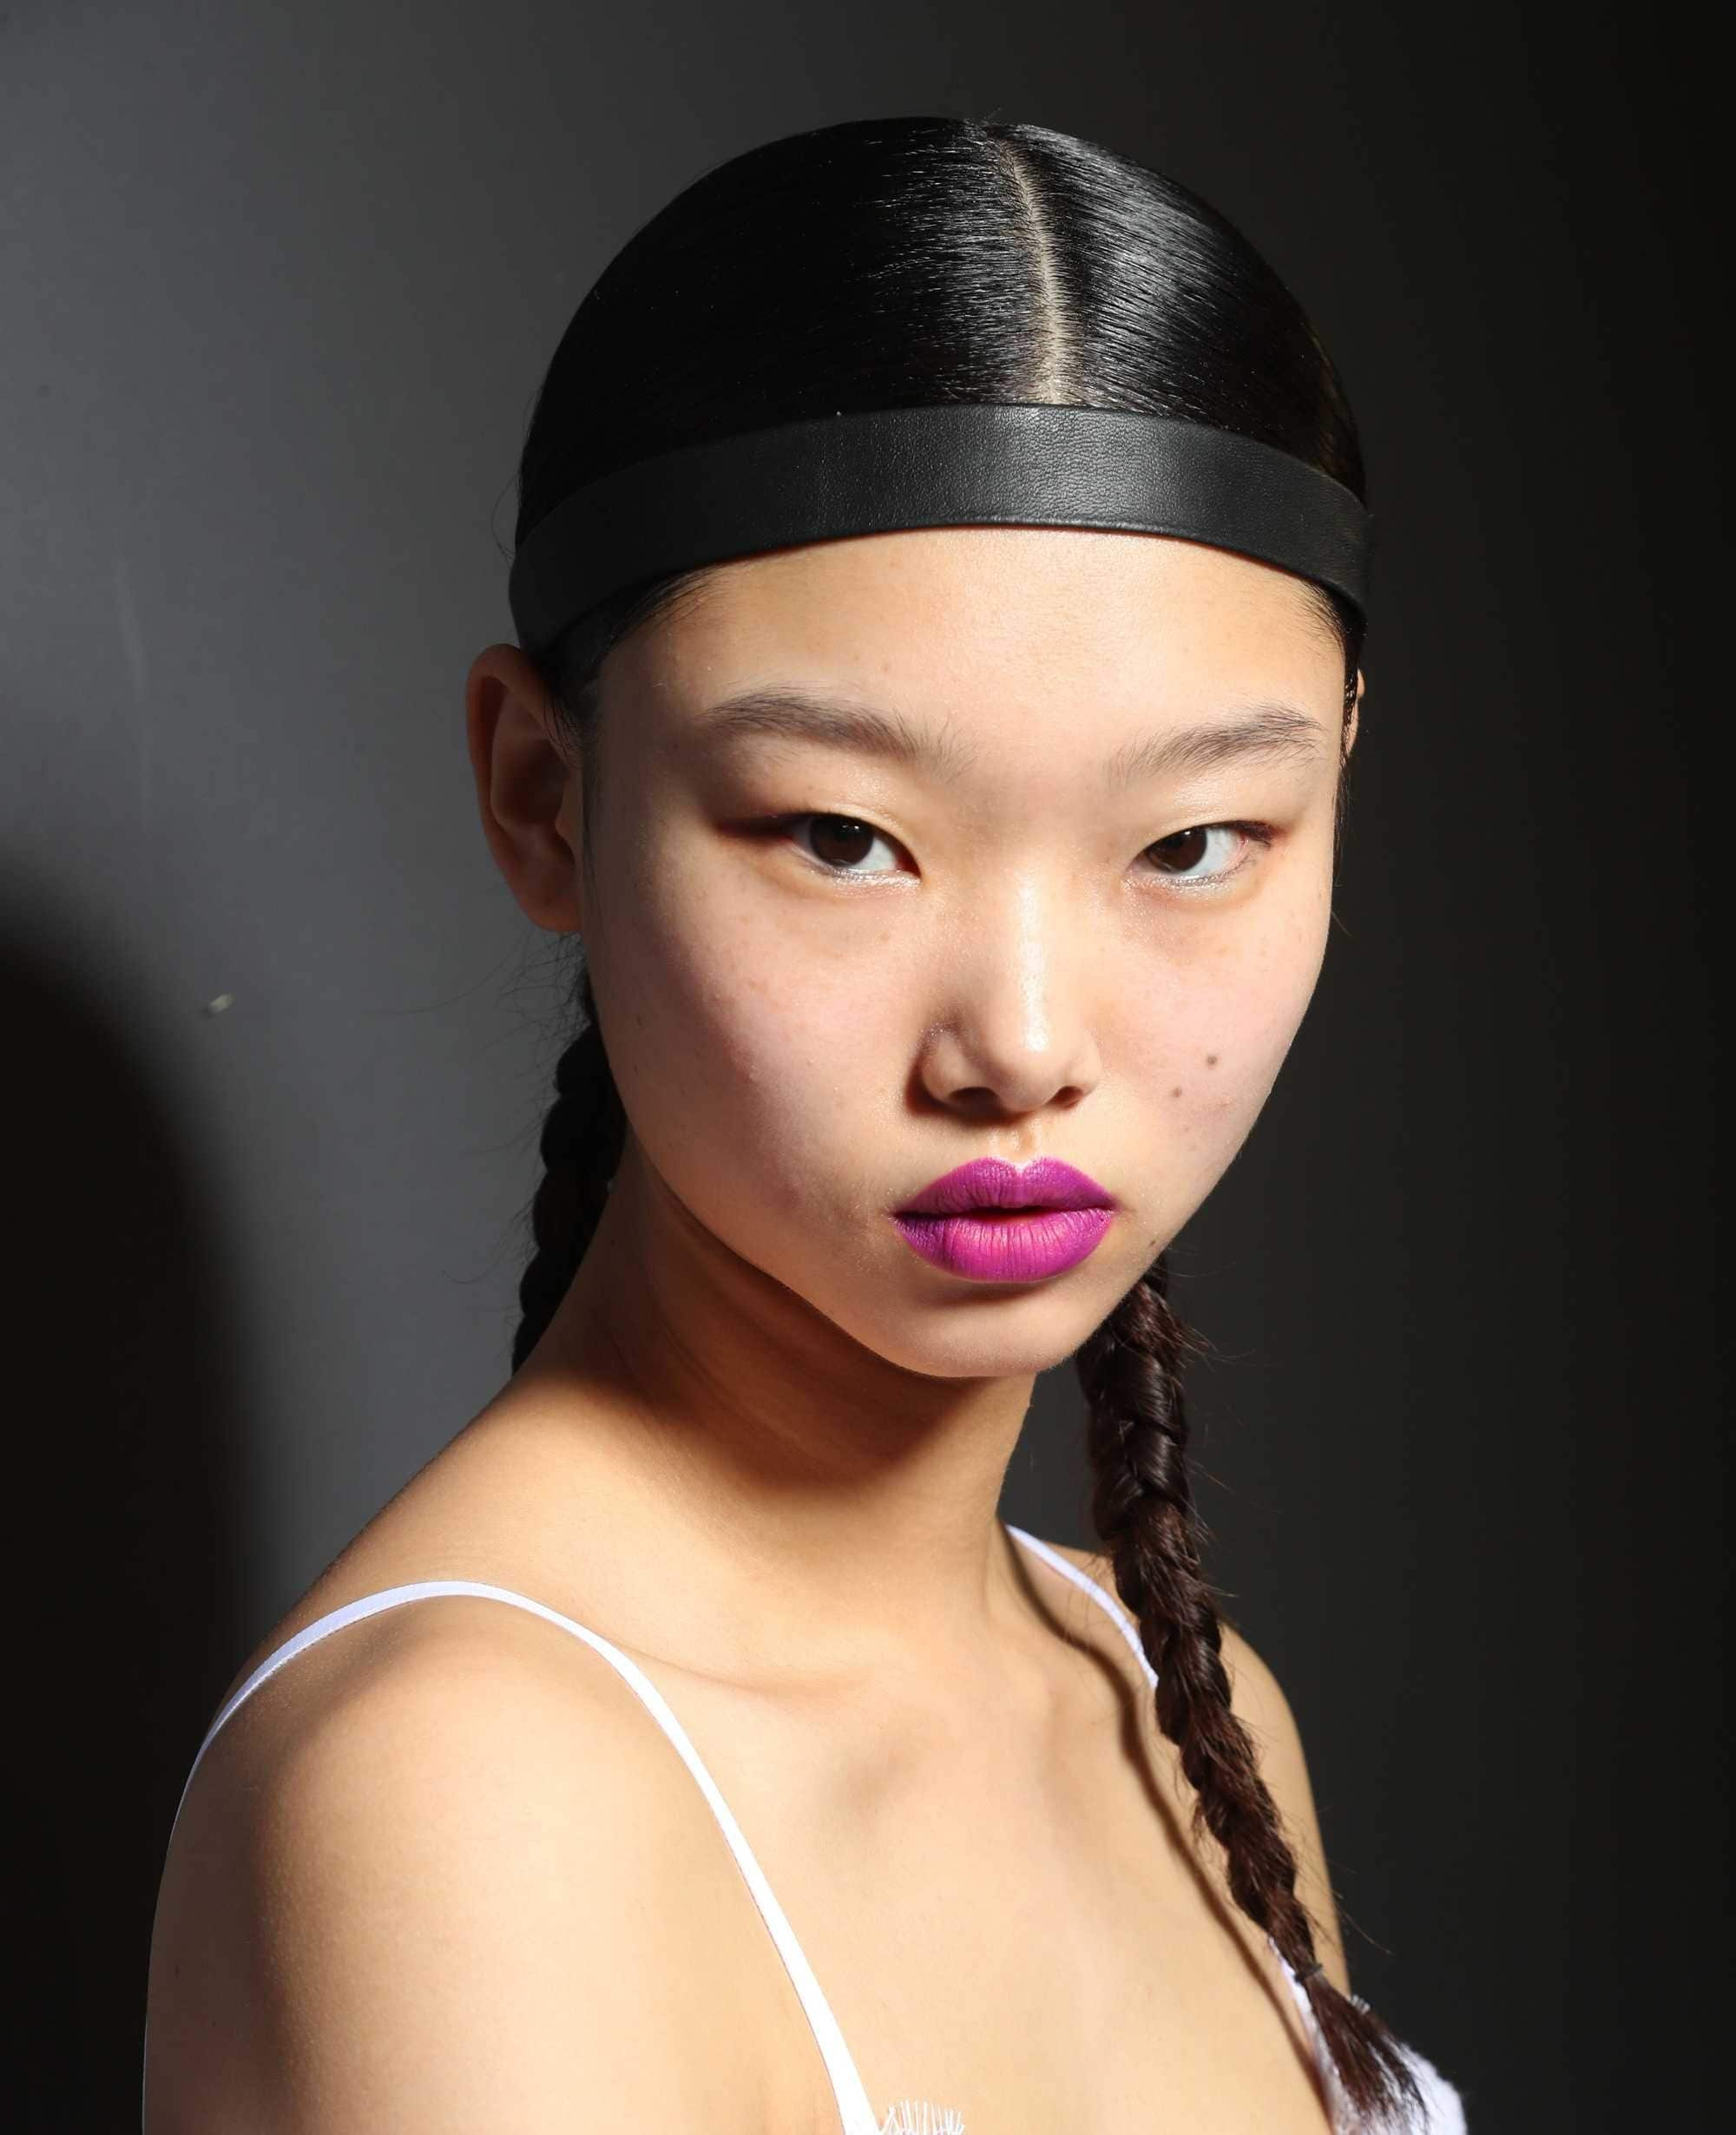 Headband and bandana hairstyles: Close up headshot of a asian woman with dark brown straight hair style in pigtail braids with a black satin strip of ribbon used as a headband